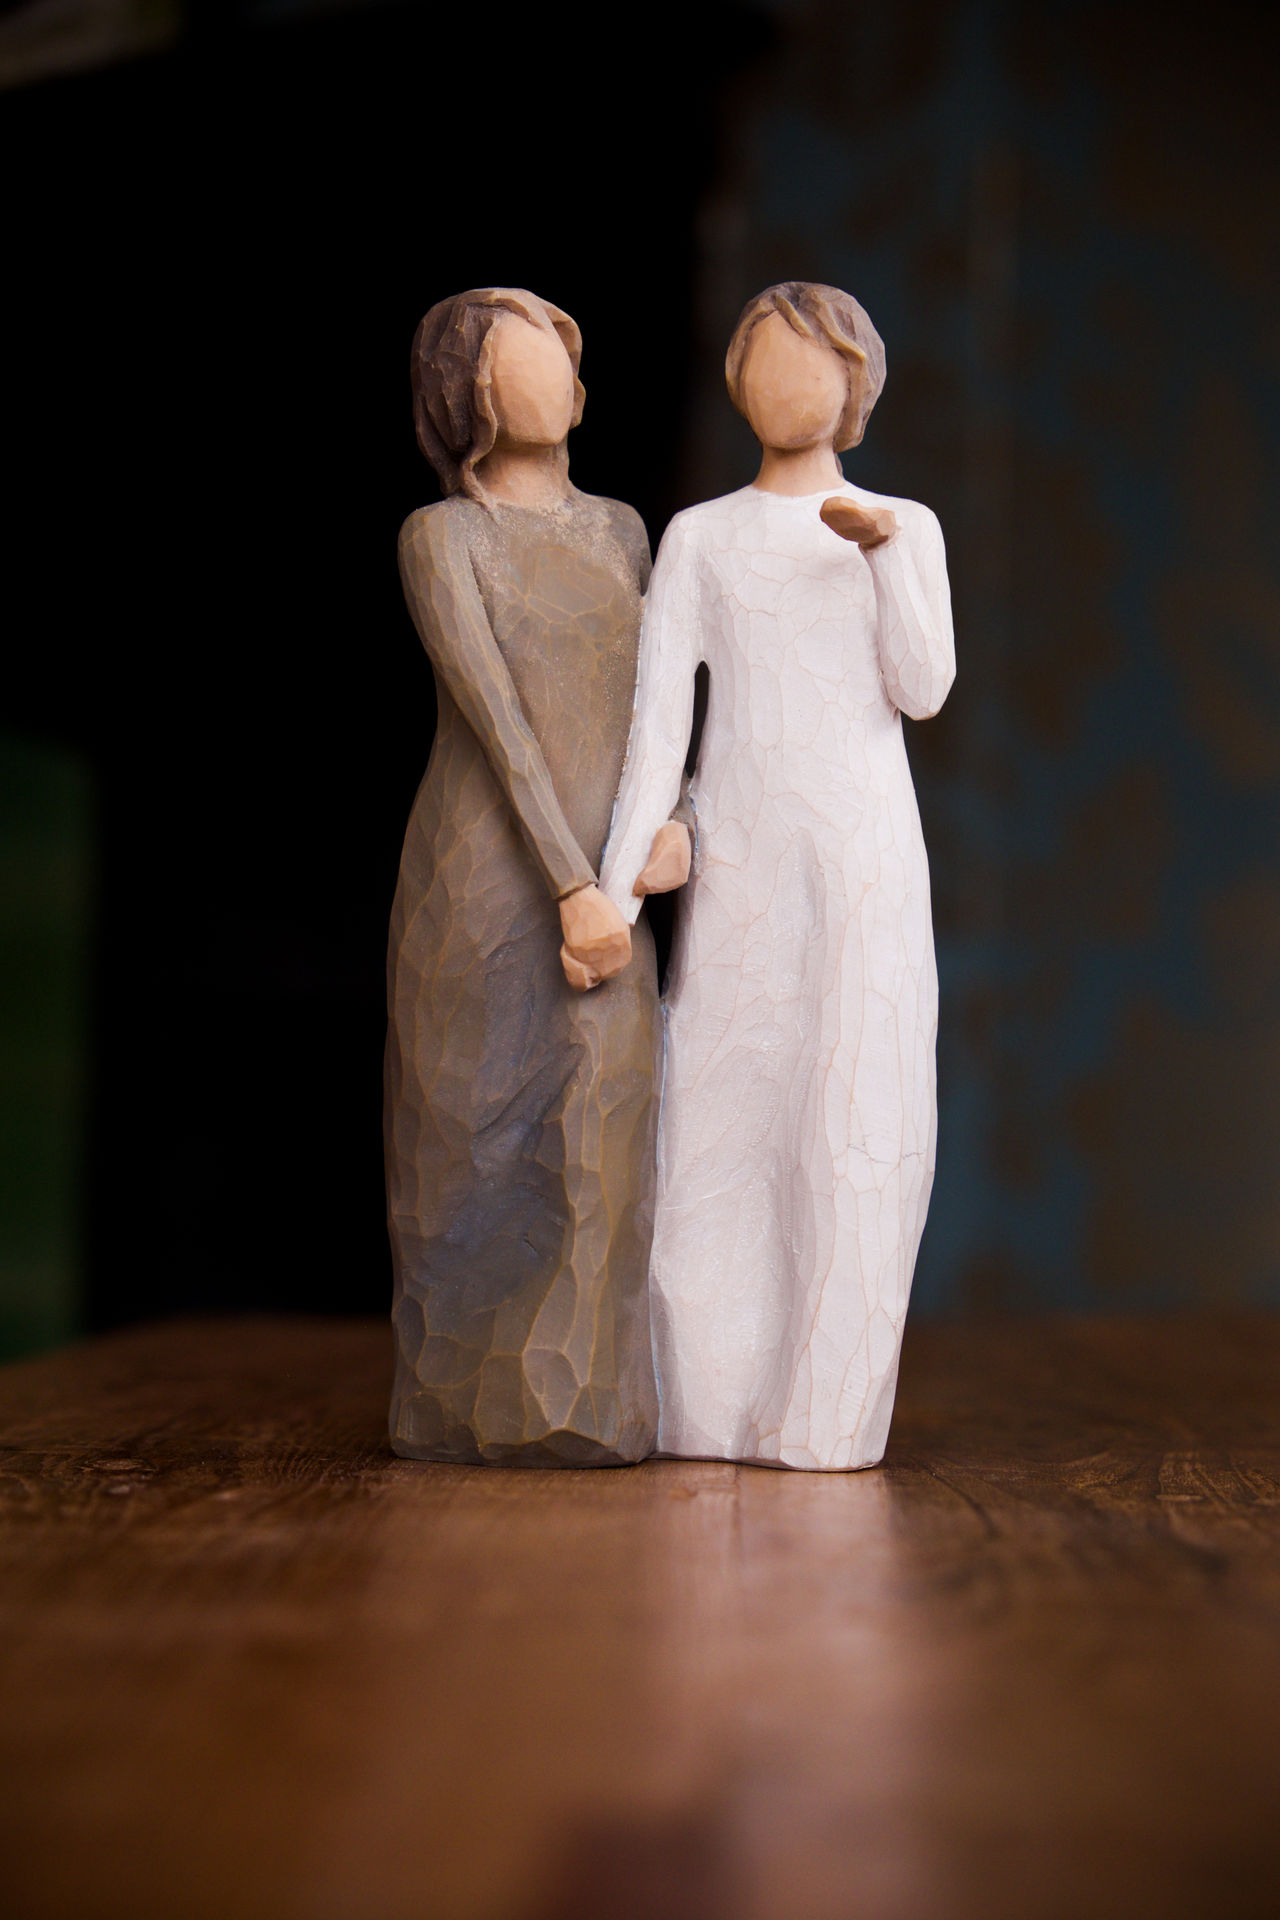 Adult Adults Only Affection Affectionate Closeness Diversity Full Length Gay Love People Statues Tradition Two People Two Women Valentine Wooden Statues